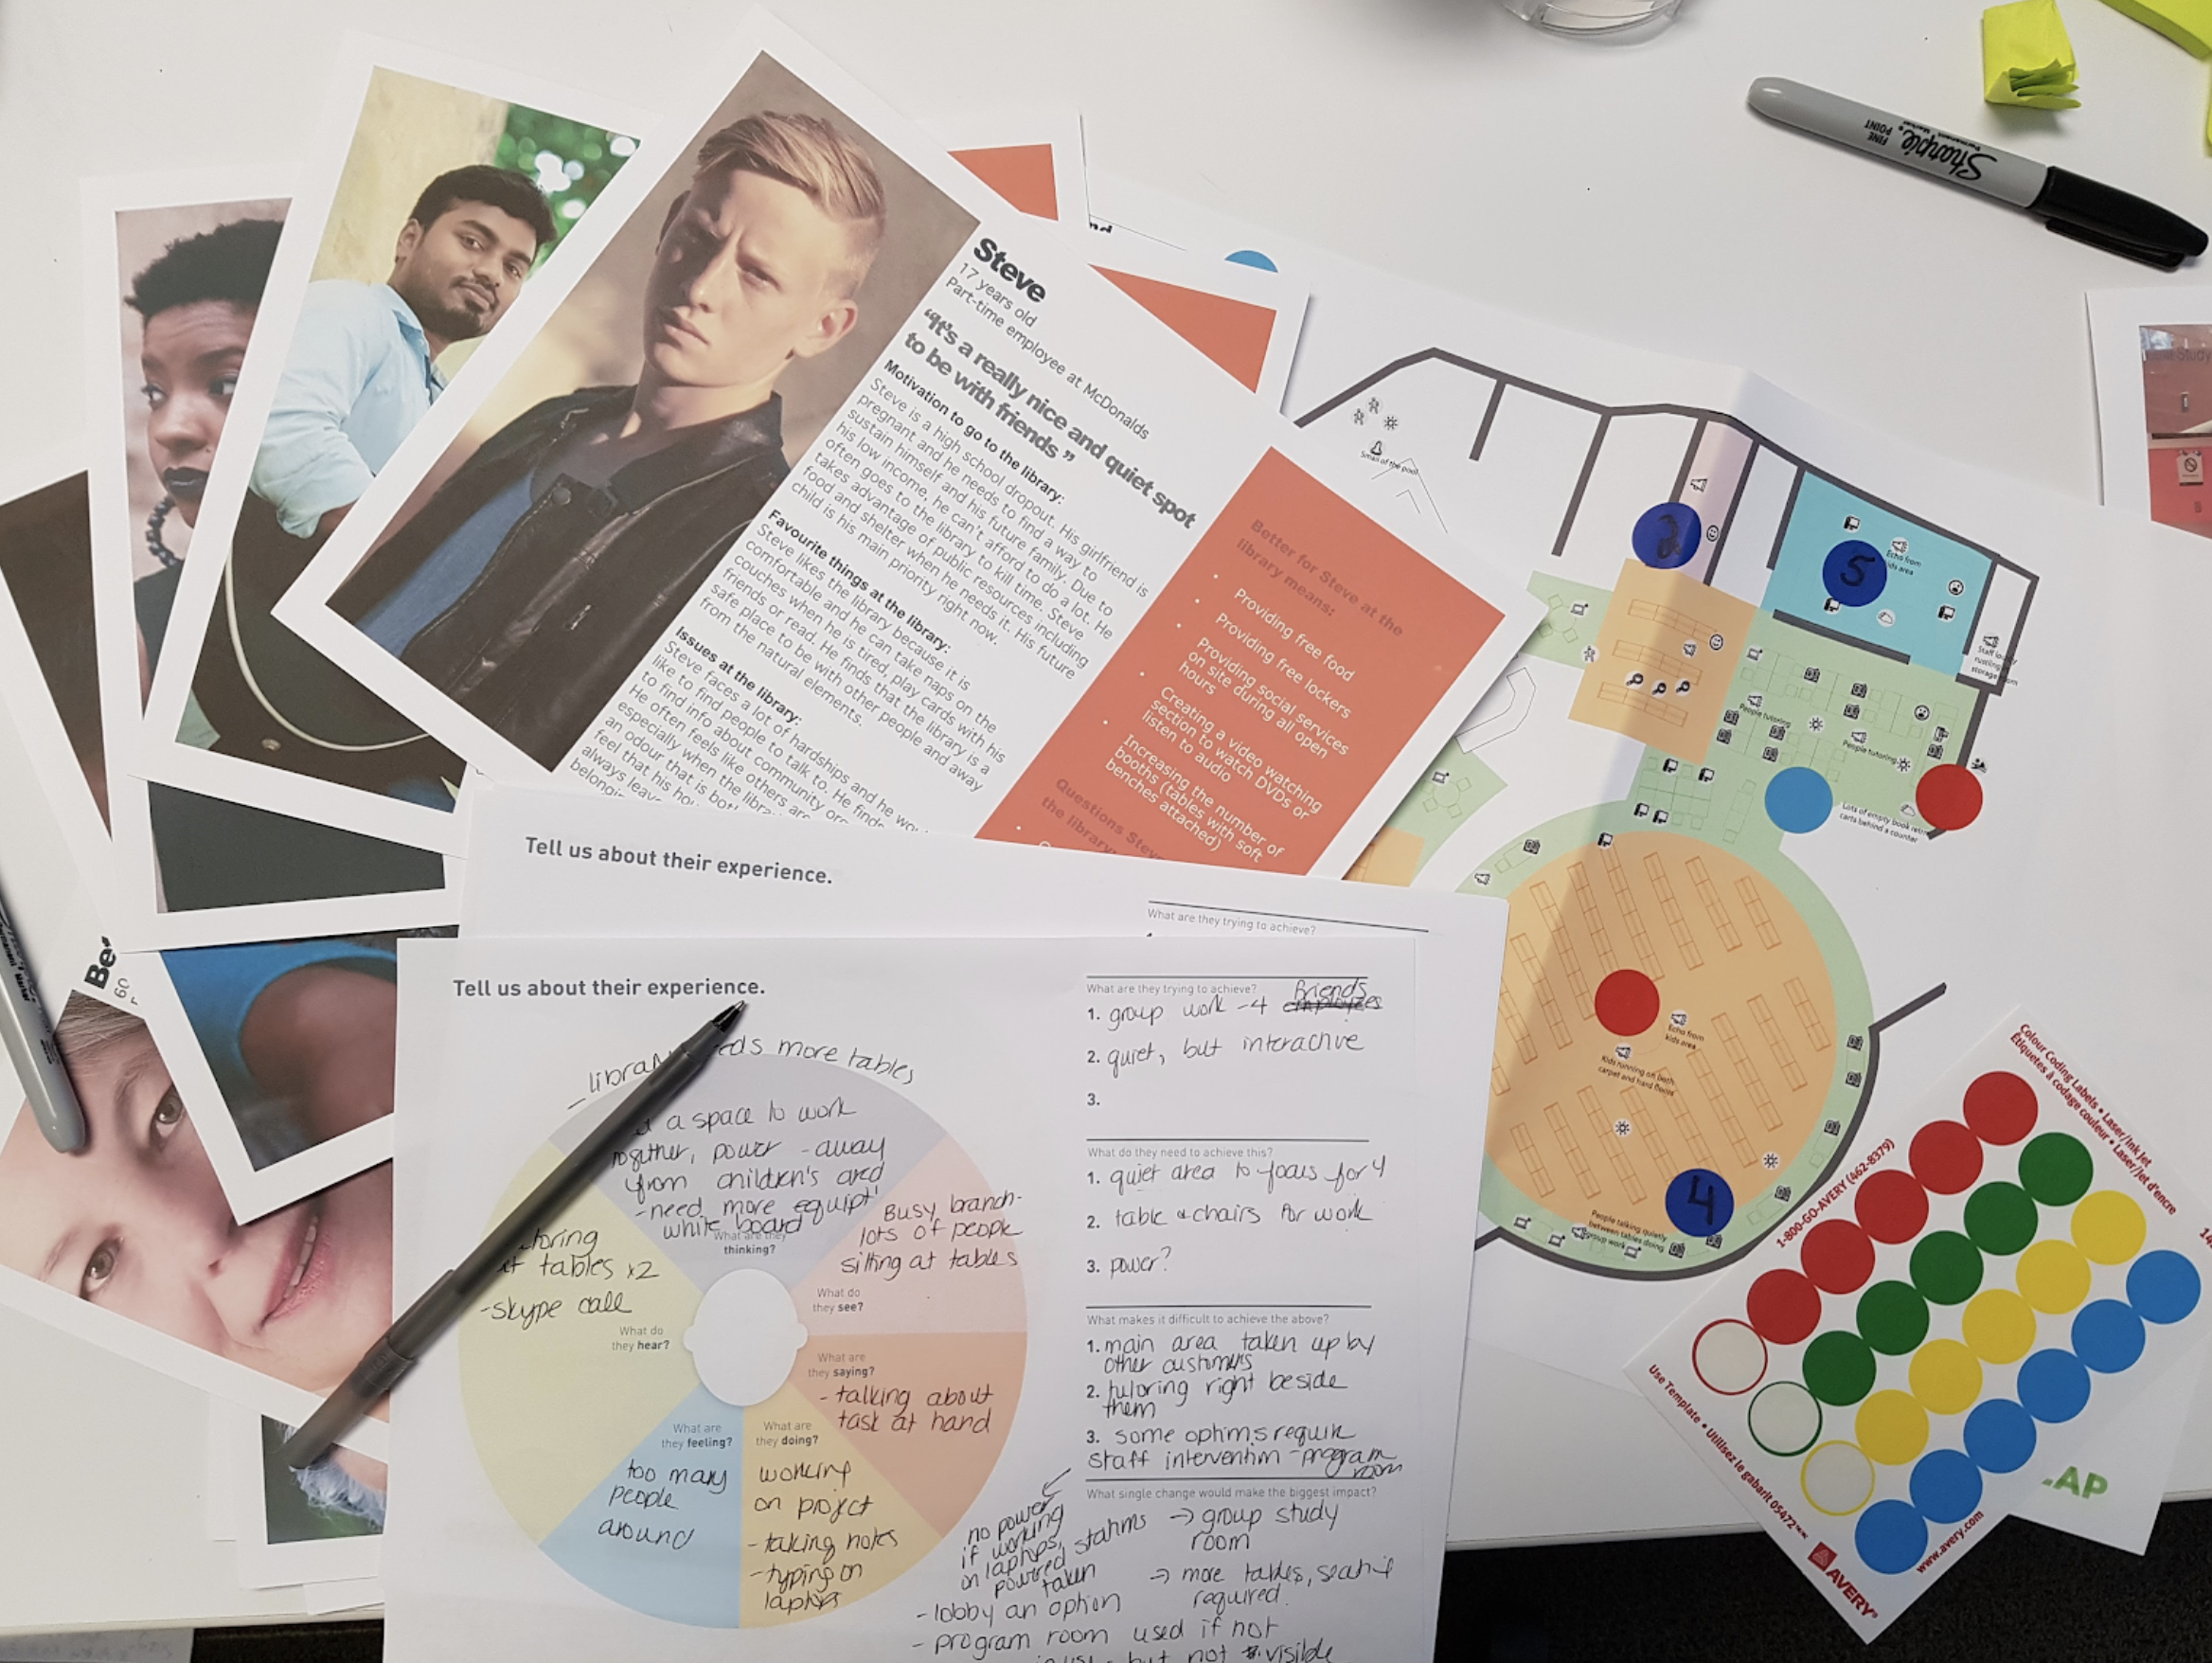 An Empathy Map along with an example of how Personas may be designed